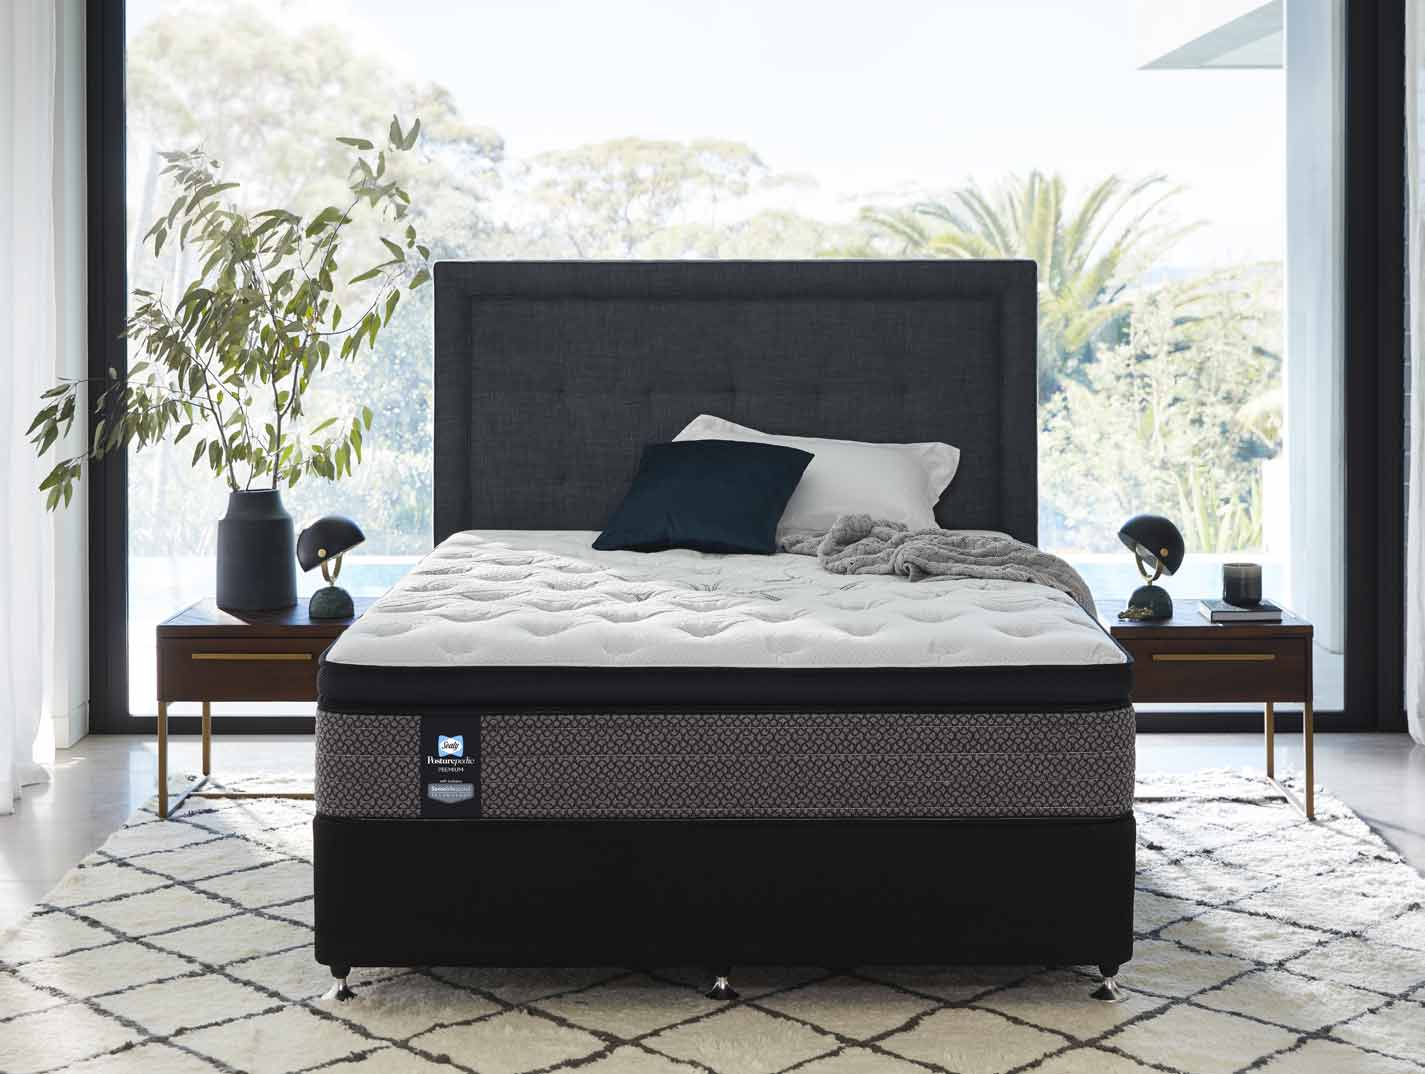 Sealy Posturepedic Peformance Base Charcoal Beds